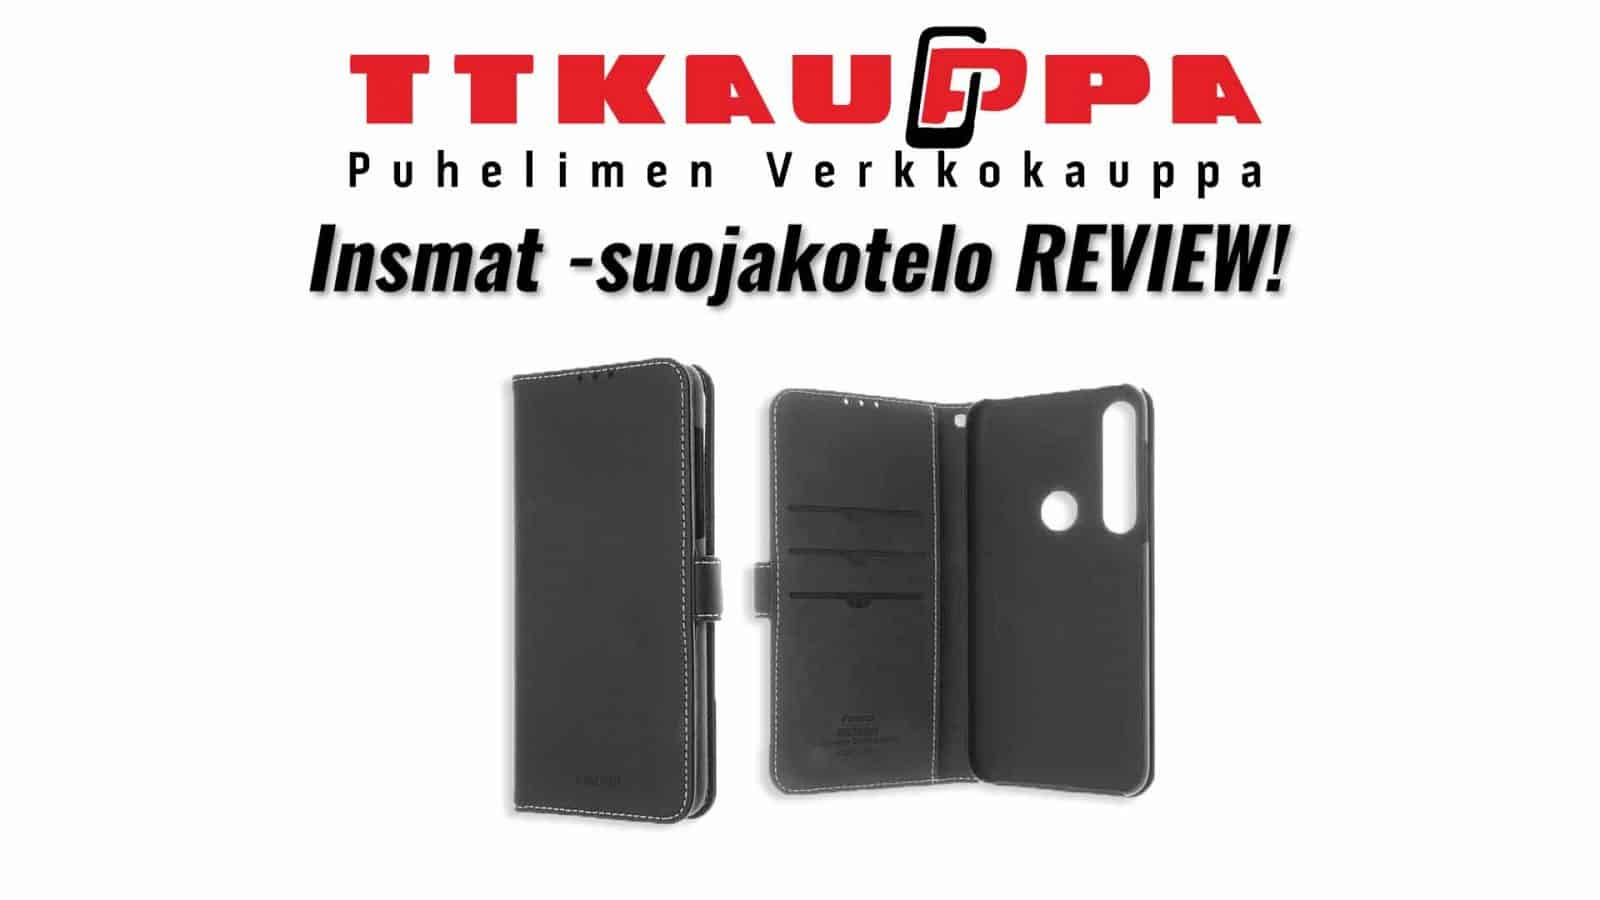 Insmat -suojakotelo REVIEW!